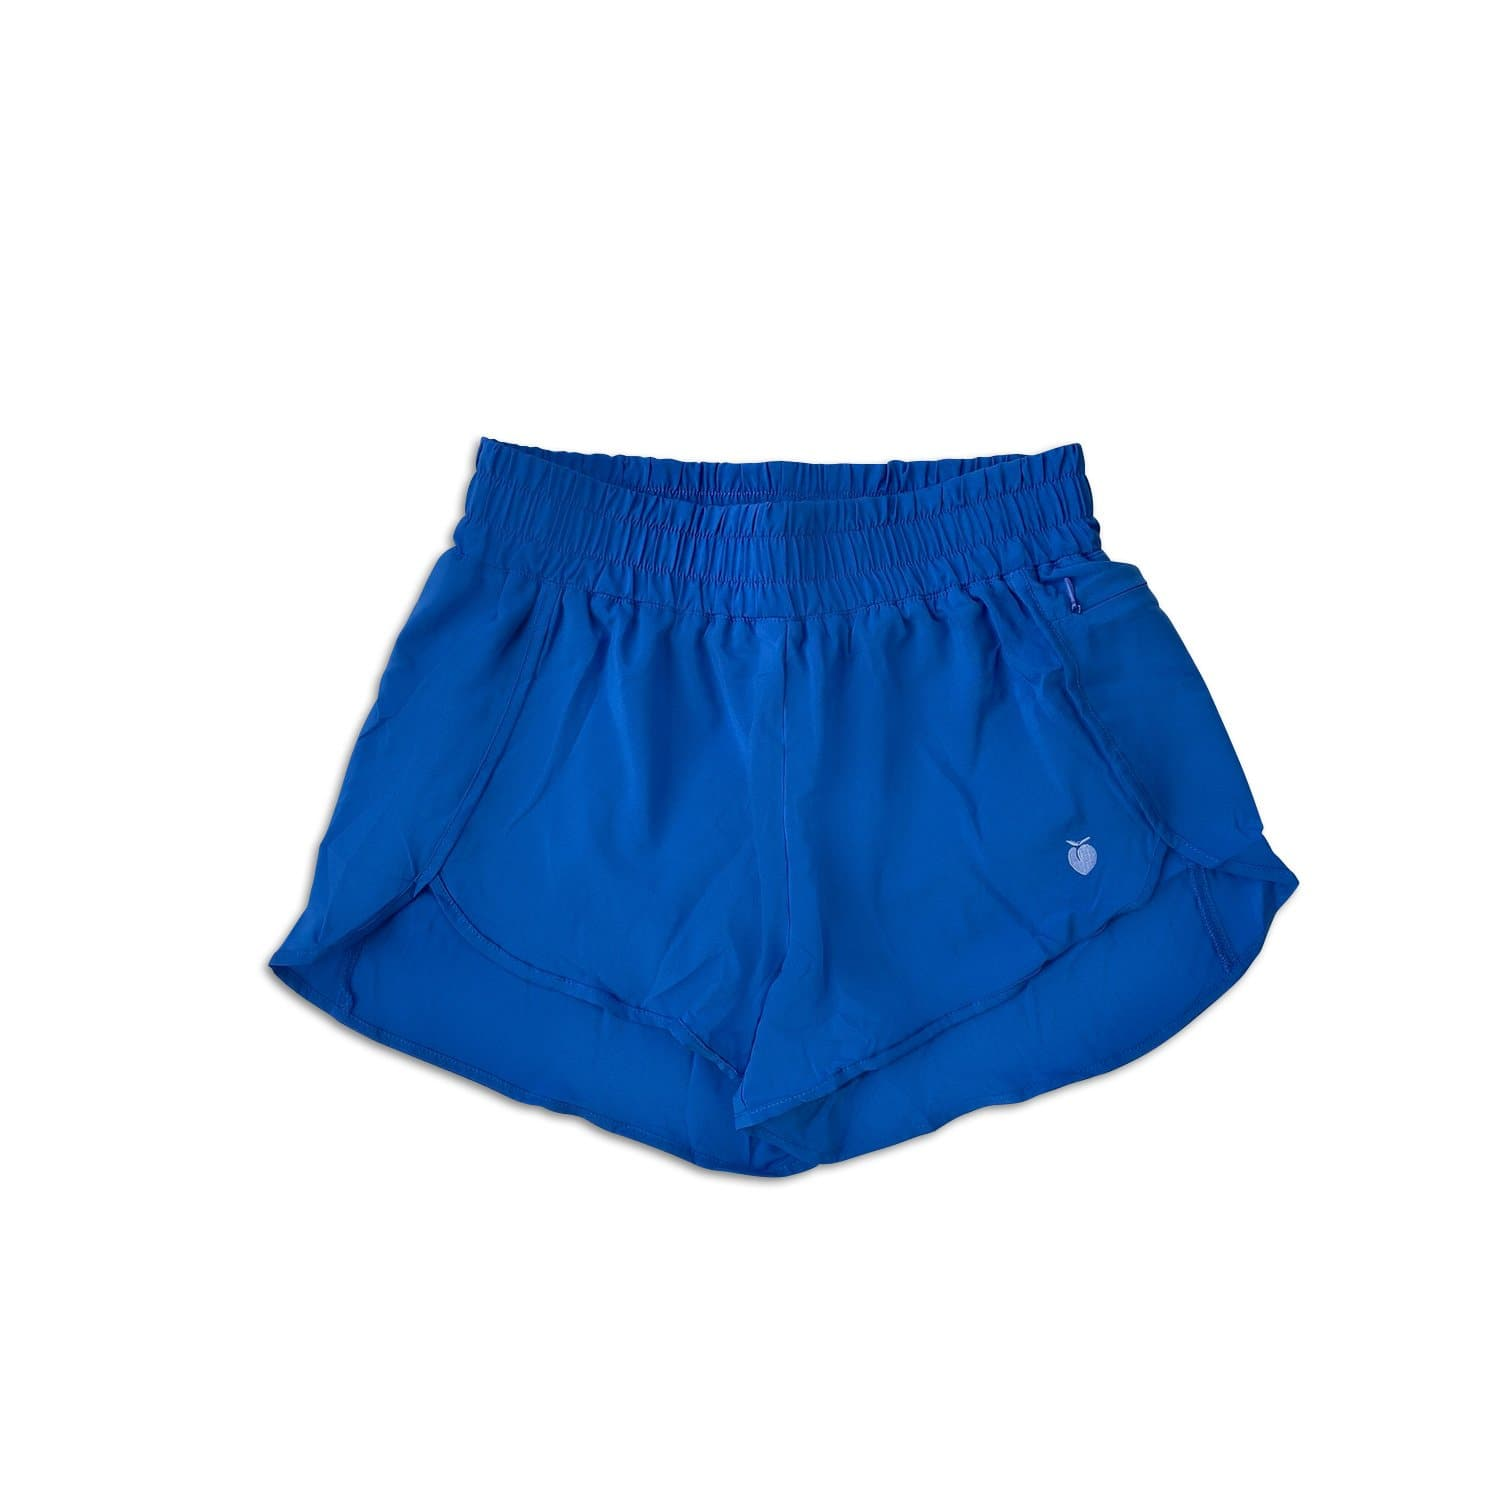 Women's Liner Track Shorts - Blue